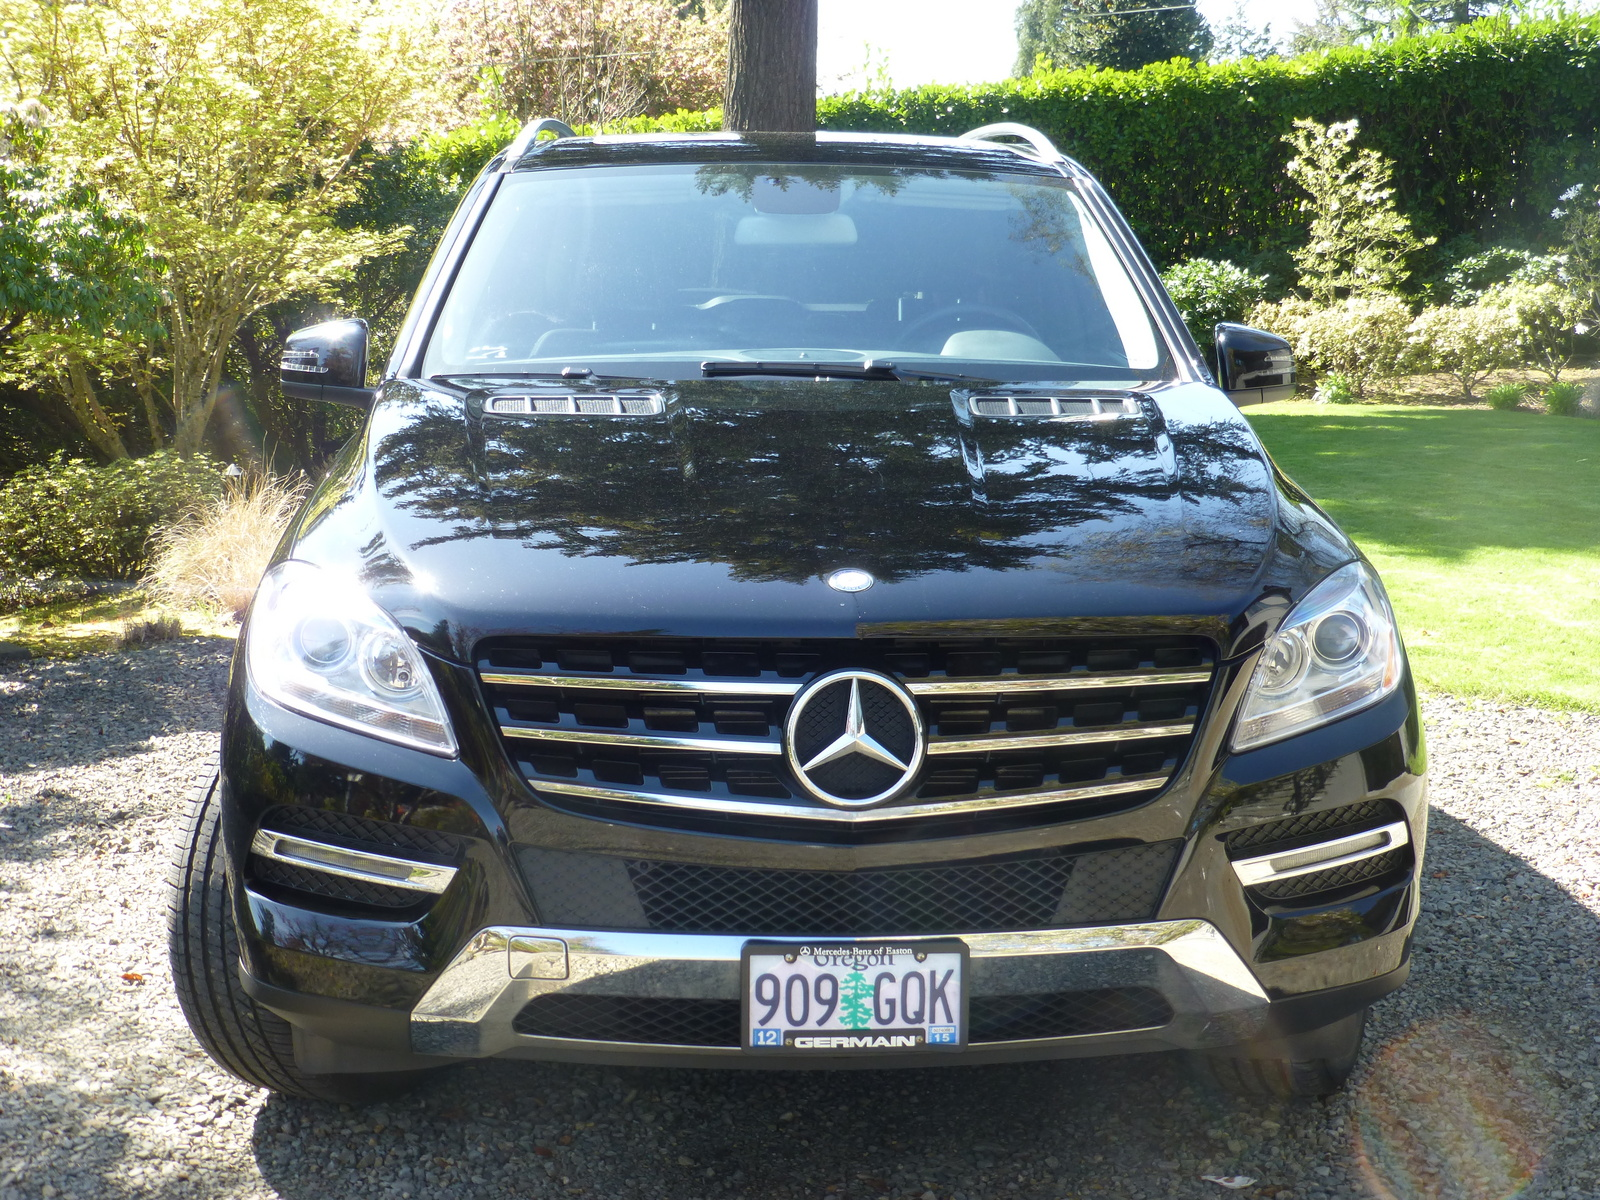 Picture of 2013 mercedes benz m class ml350 4matic exterior for 2013 mercedes benz ml350